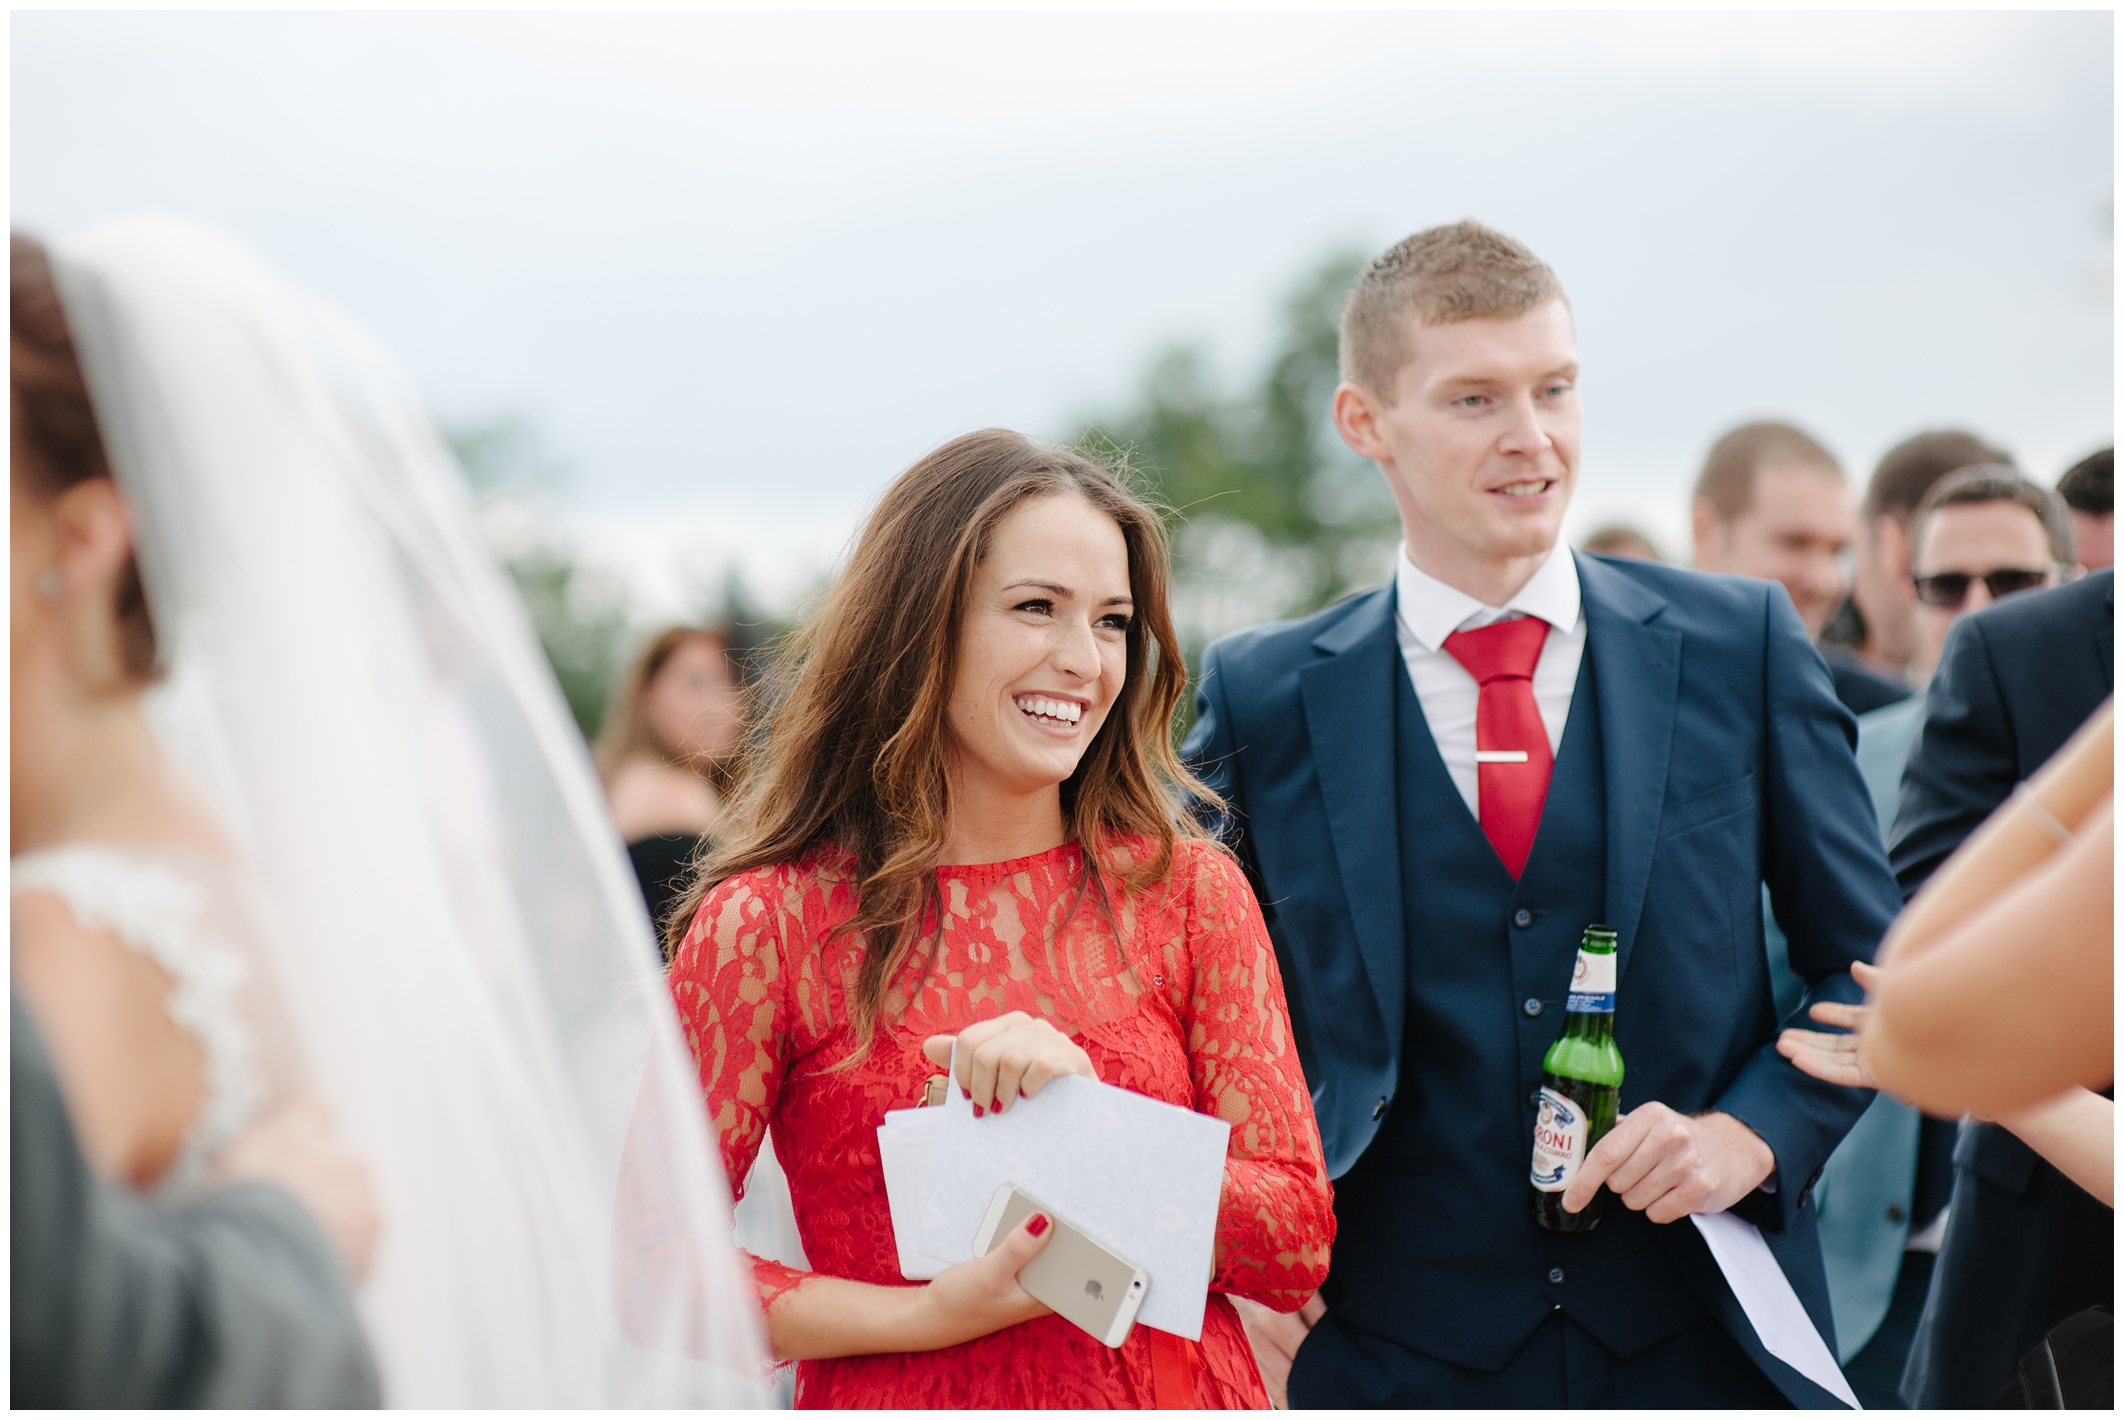 Lynsey_Andy_Rossharbour_Fermanagh_wedding_jude_browne_photography_0087.jpg